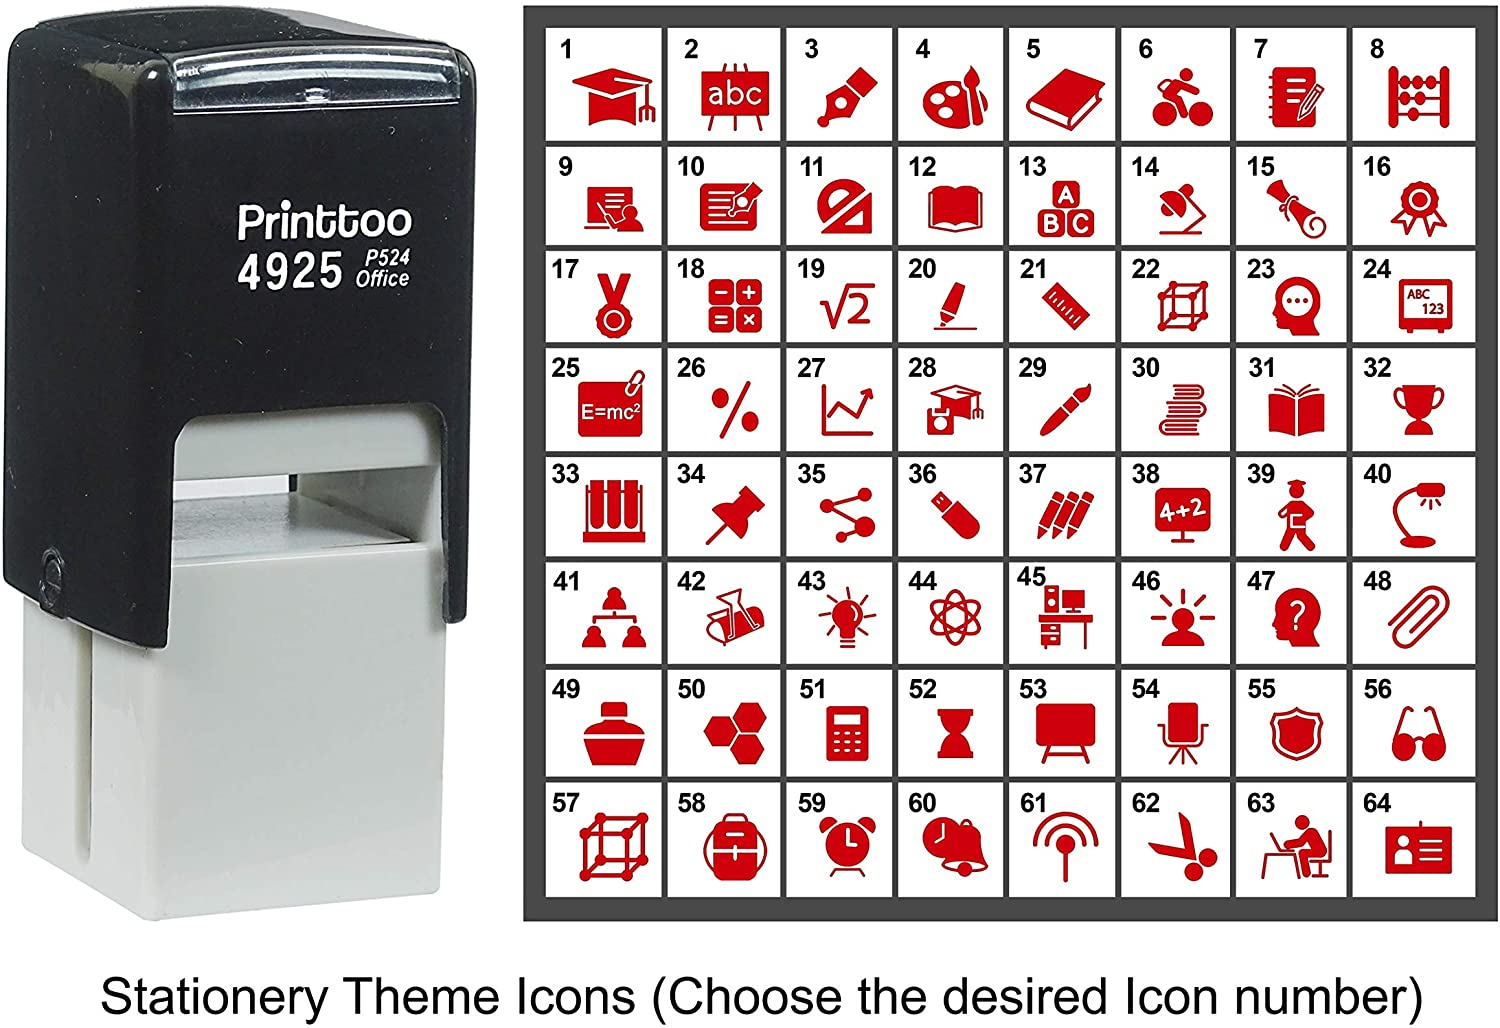 Printtoo Personalized Stationery Theme Icons Rubber Stamp Self Inking Stamper 24 mm-Red